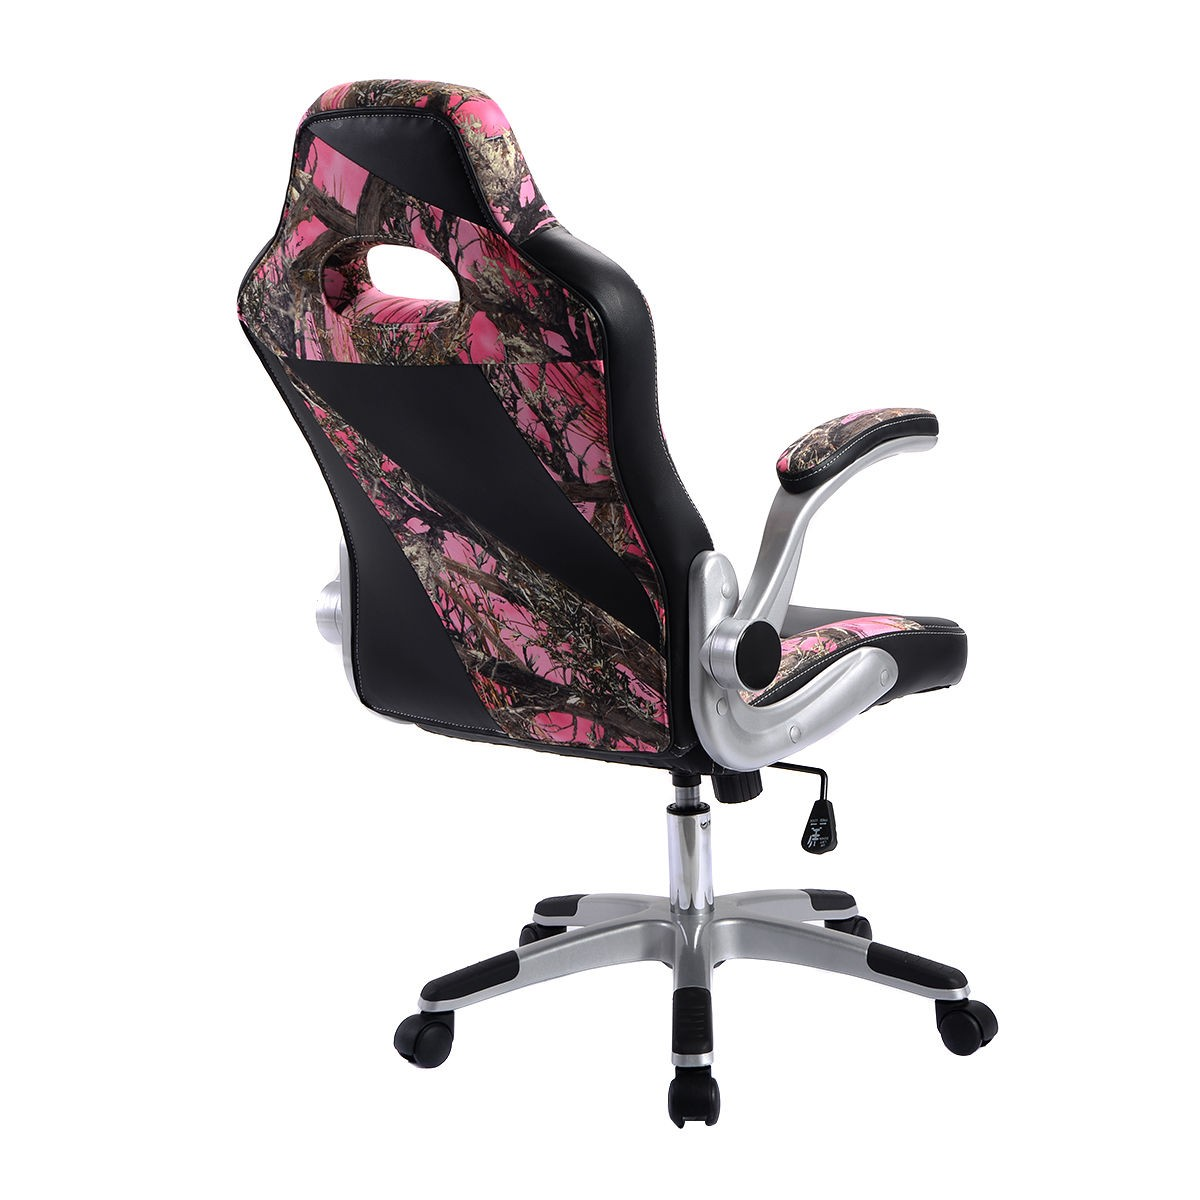 swivel hunting chair with armrests black counter height chairs new pu leather high back executive office desk task